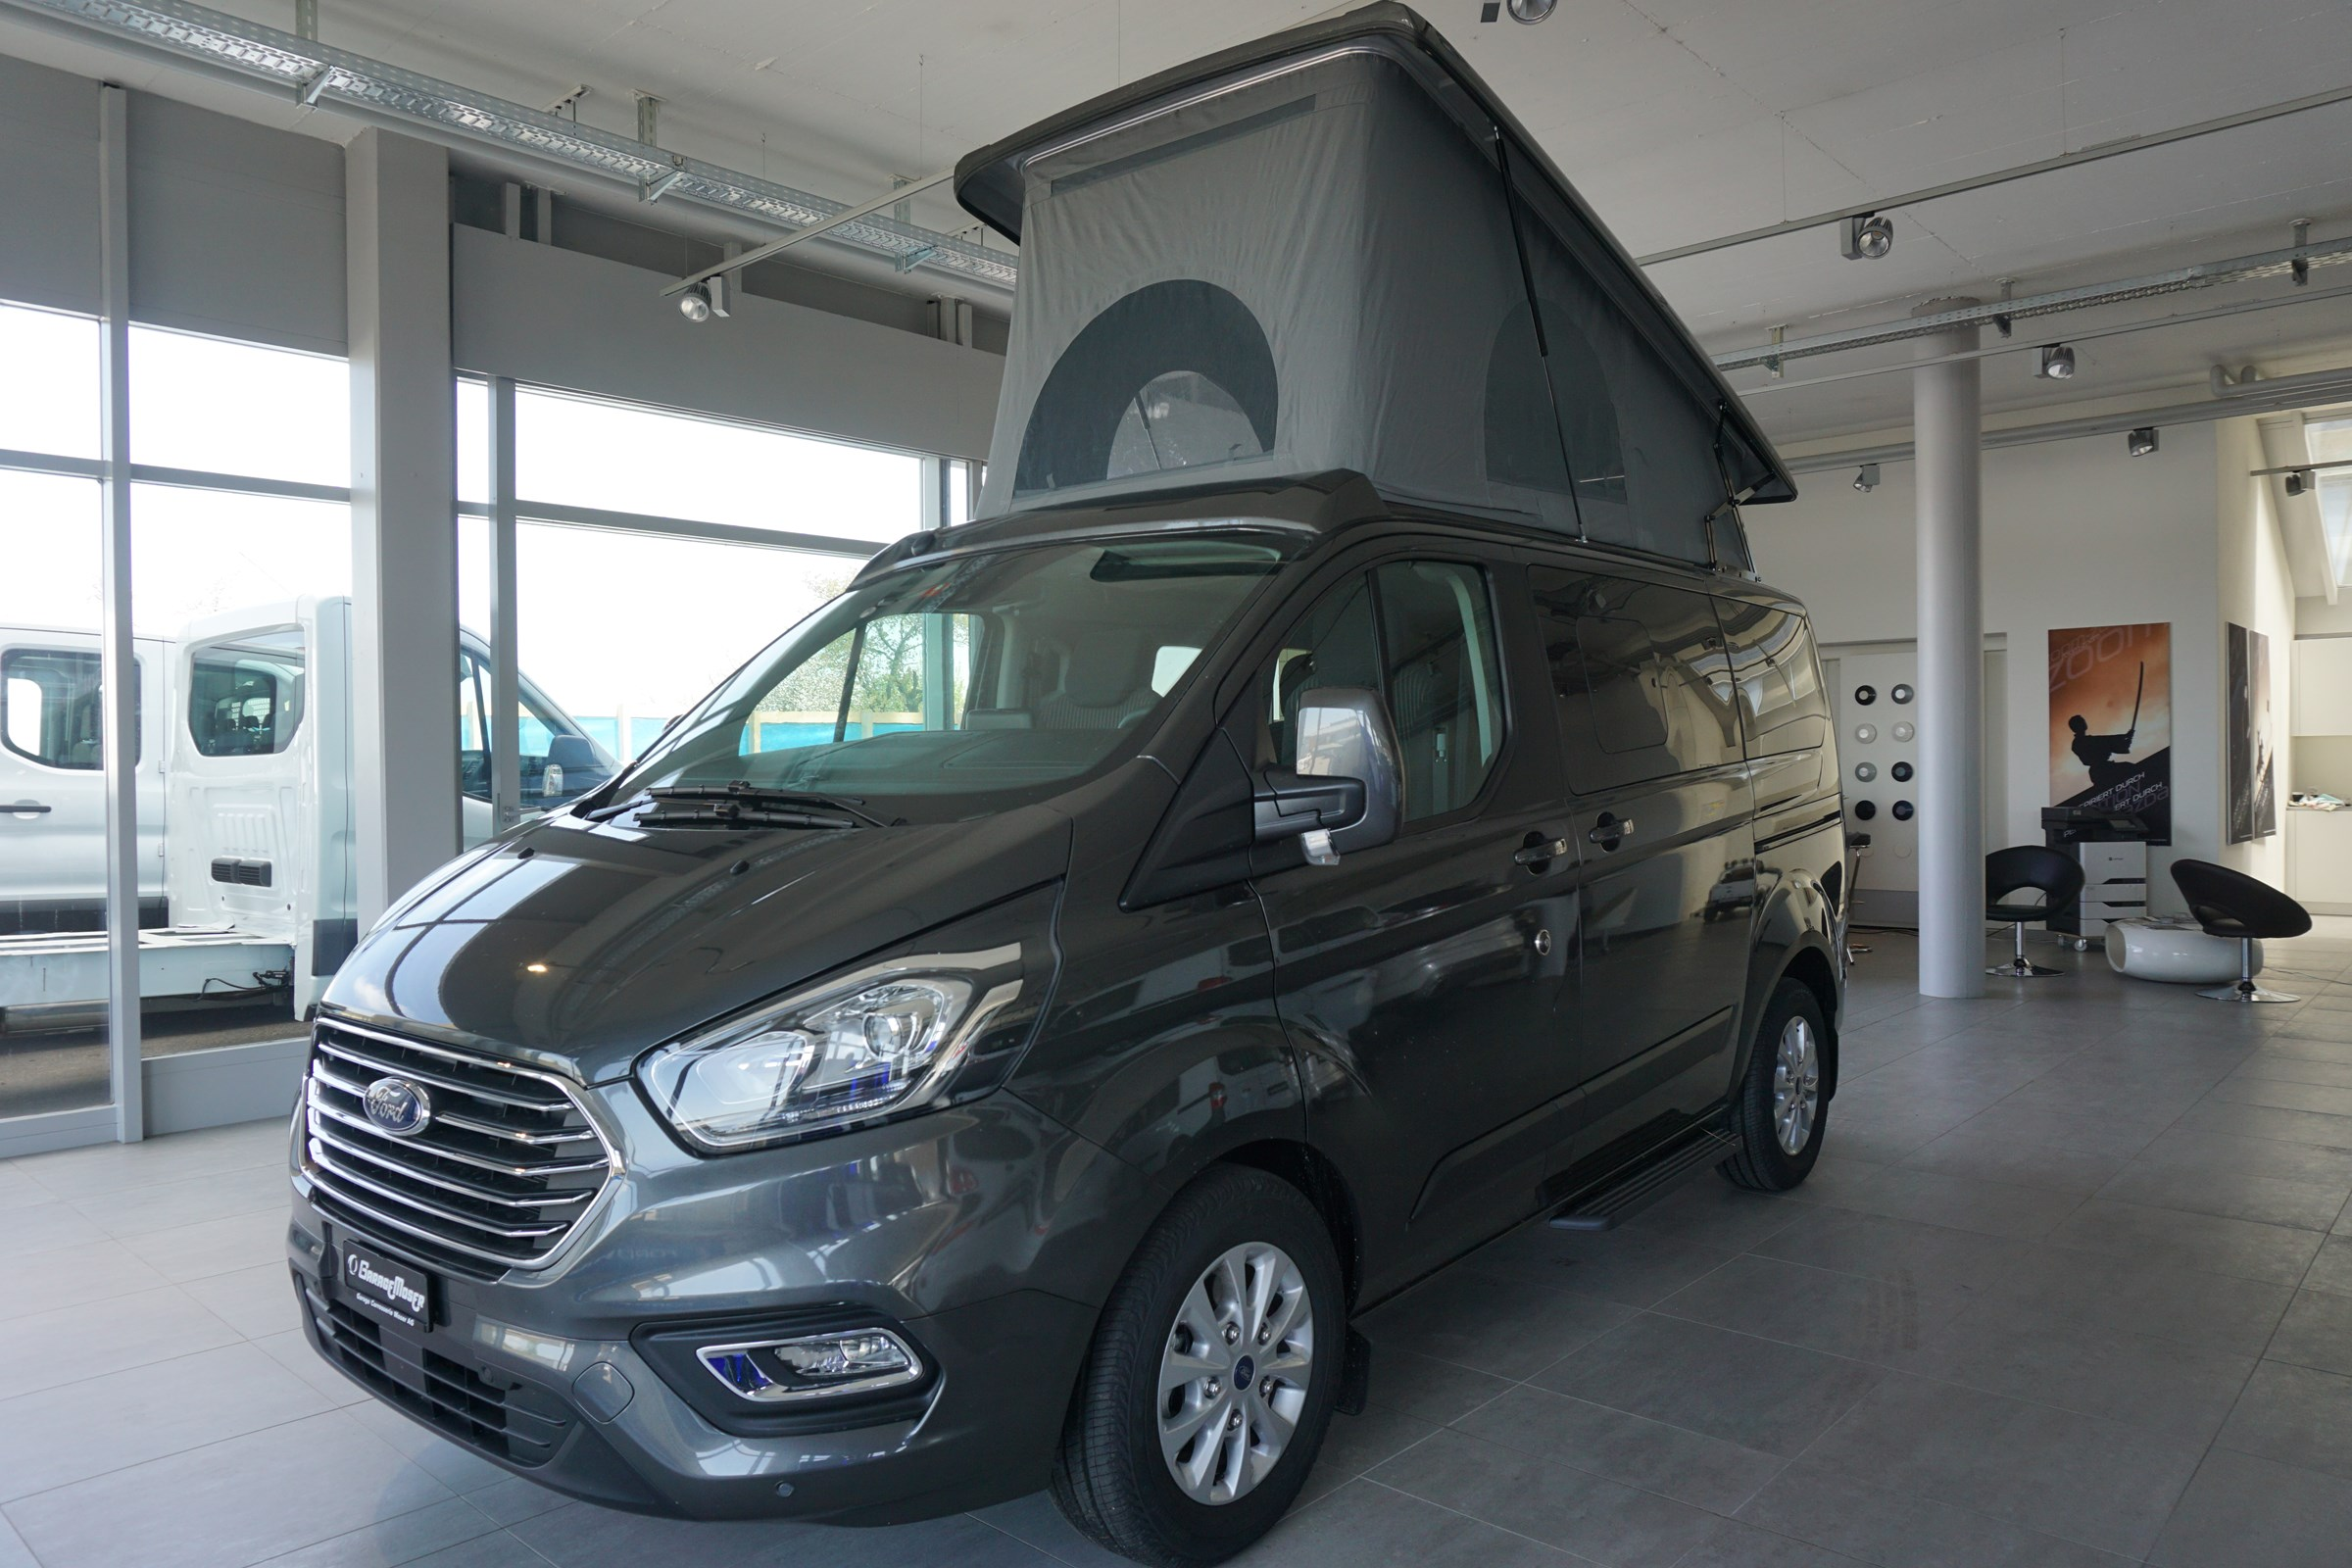 bus Ford Tourneo Transit Tourneo Euroline (Frida)